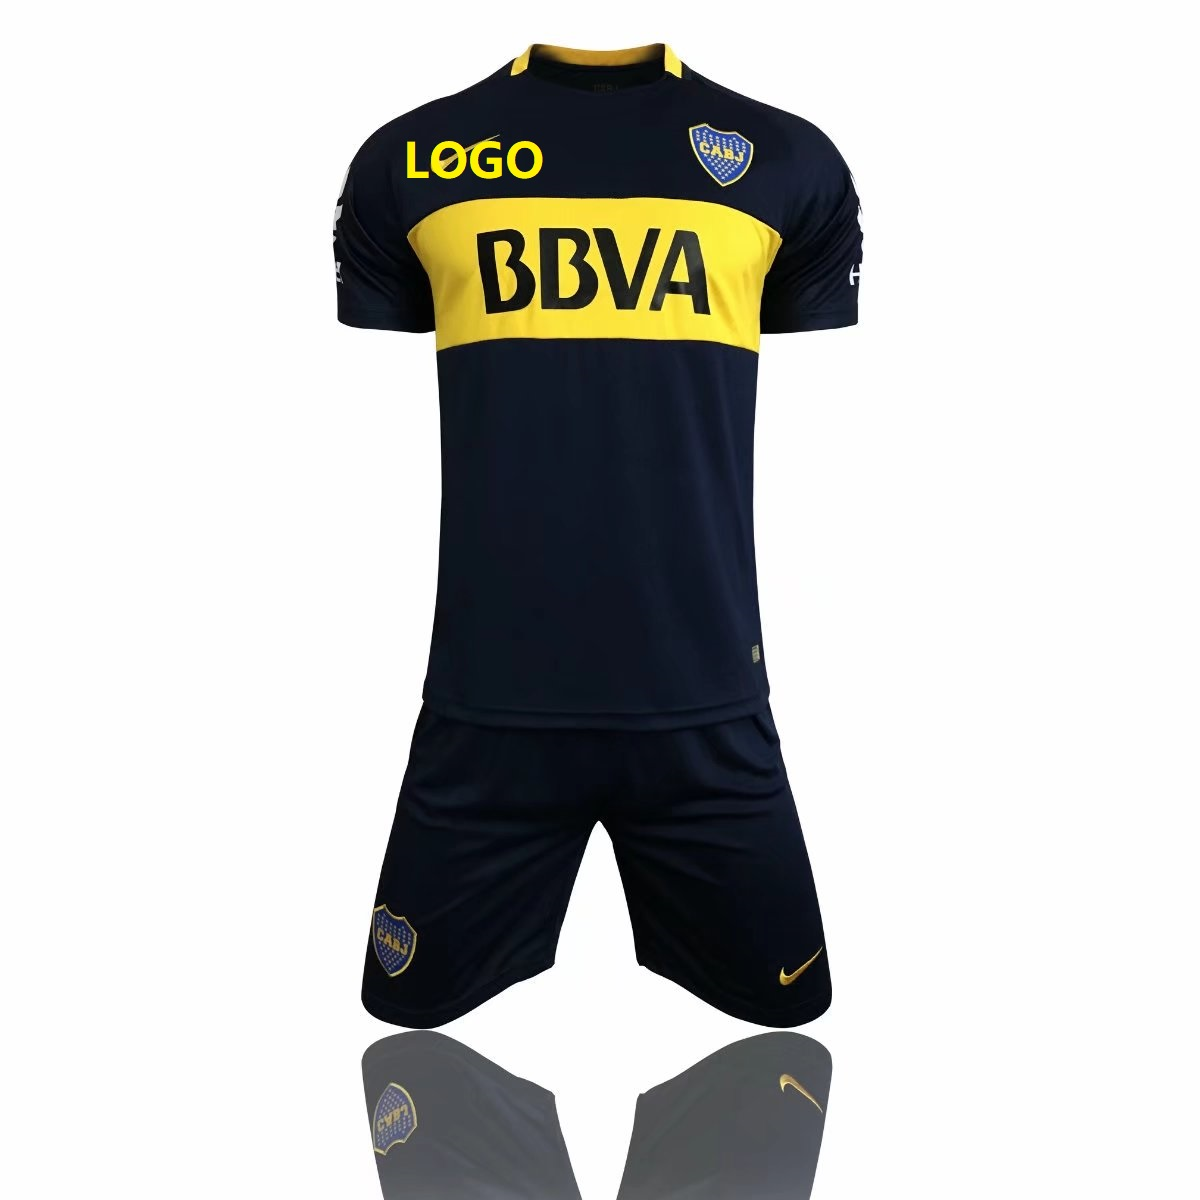 0fe0712e3 17 18 Adult Club Atlético Boca Juniors Soccer Jersey Uniforms Men Cheap  Football Kits Custom soccer Team Jersey set